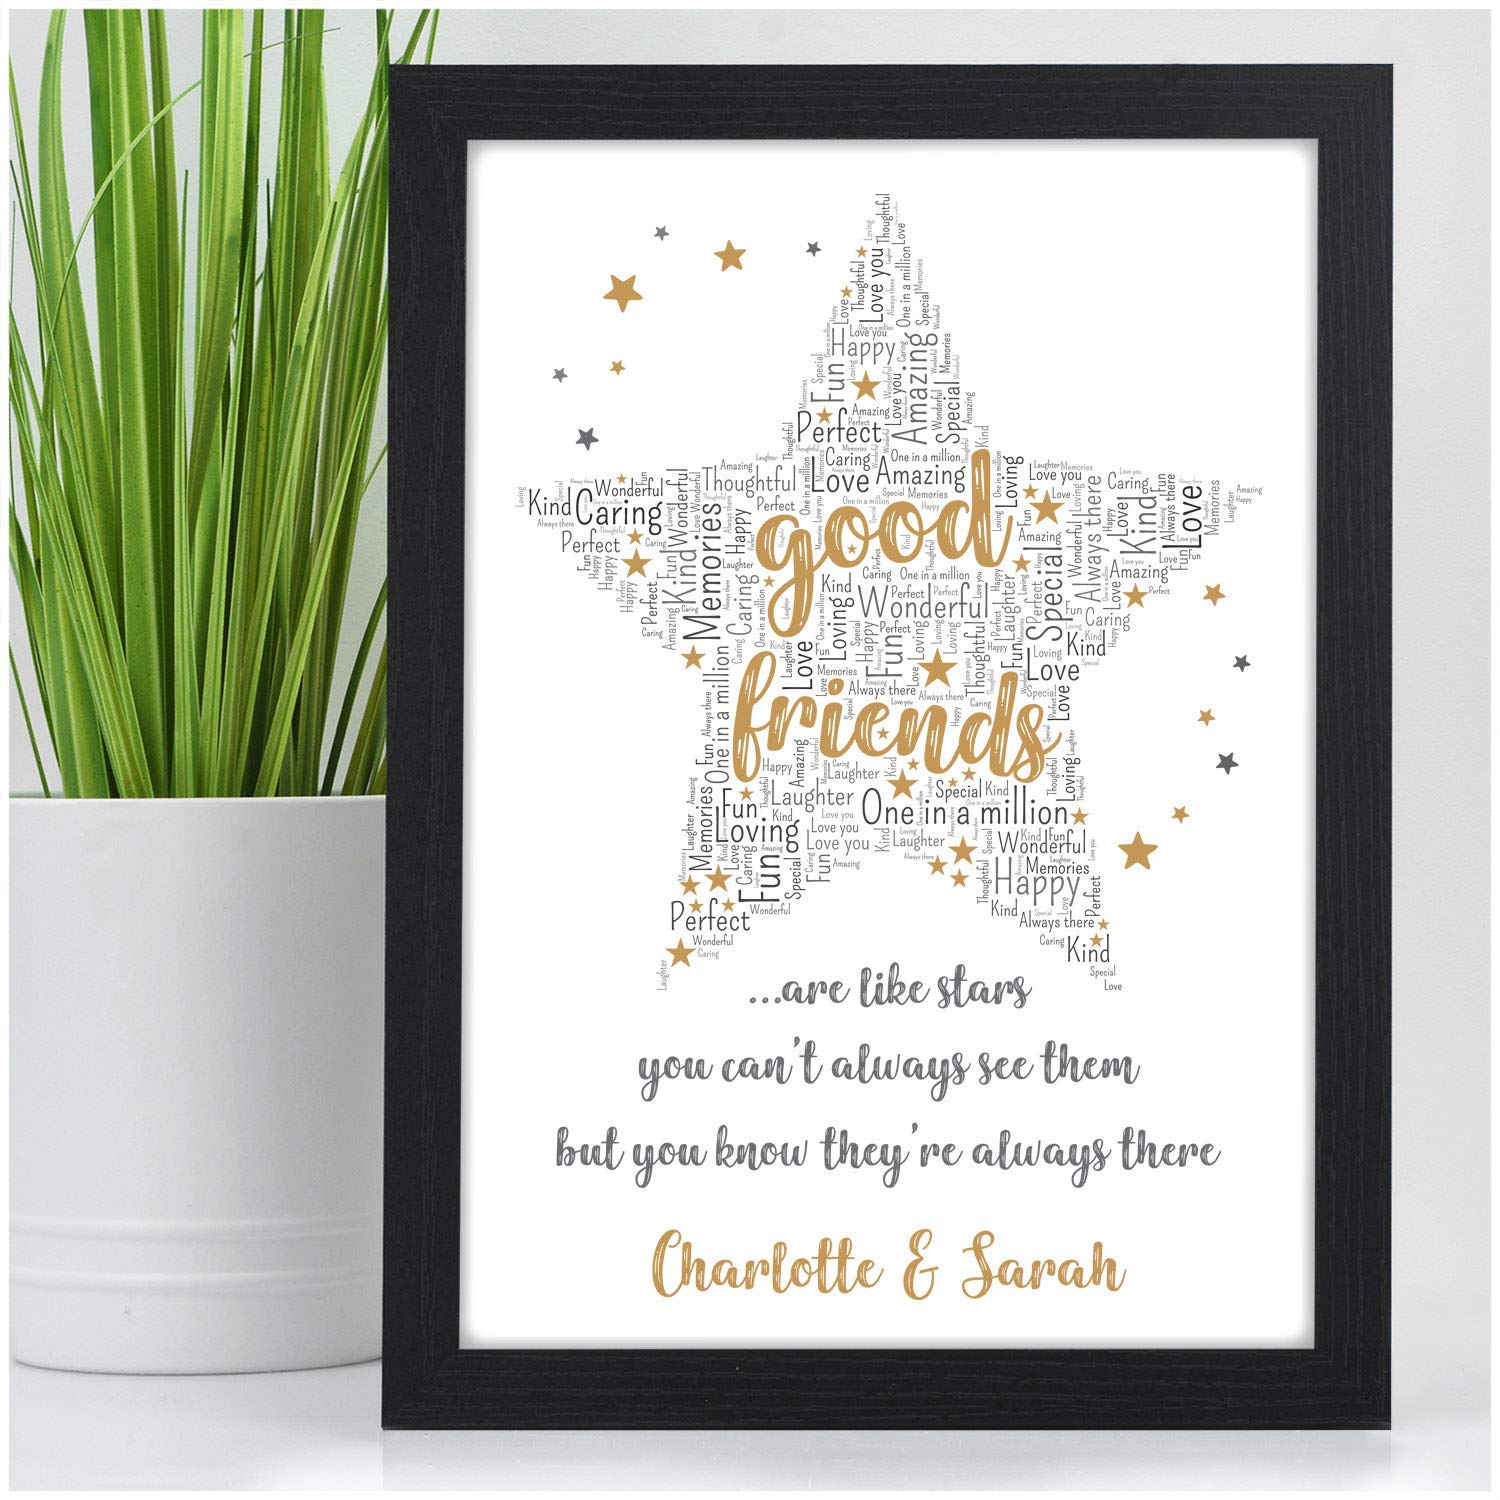 PERSONALISED Good Friends Are Like Stars Gifts For Best BFF Special Christmas Birthday Her Presents